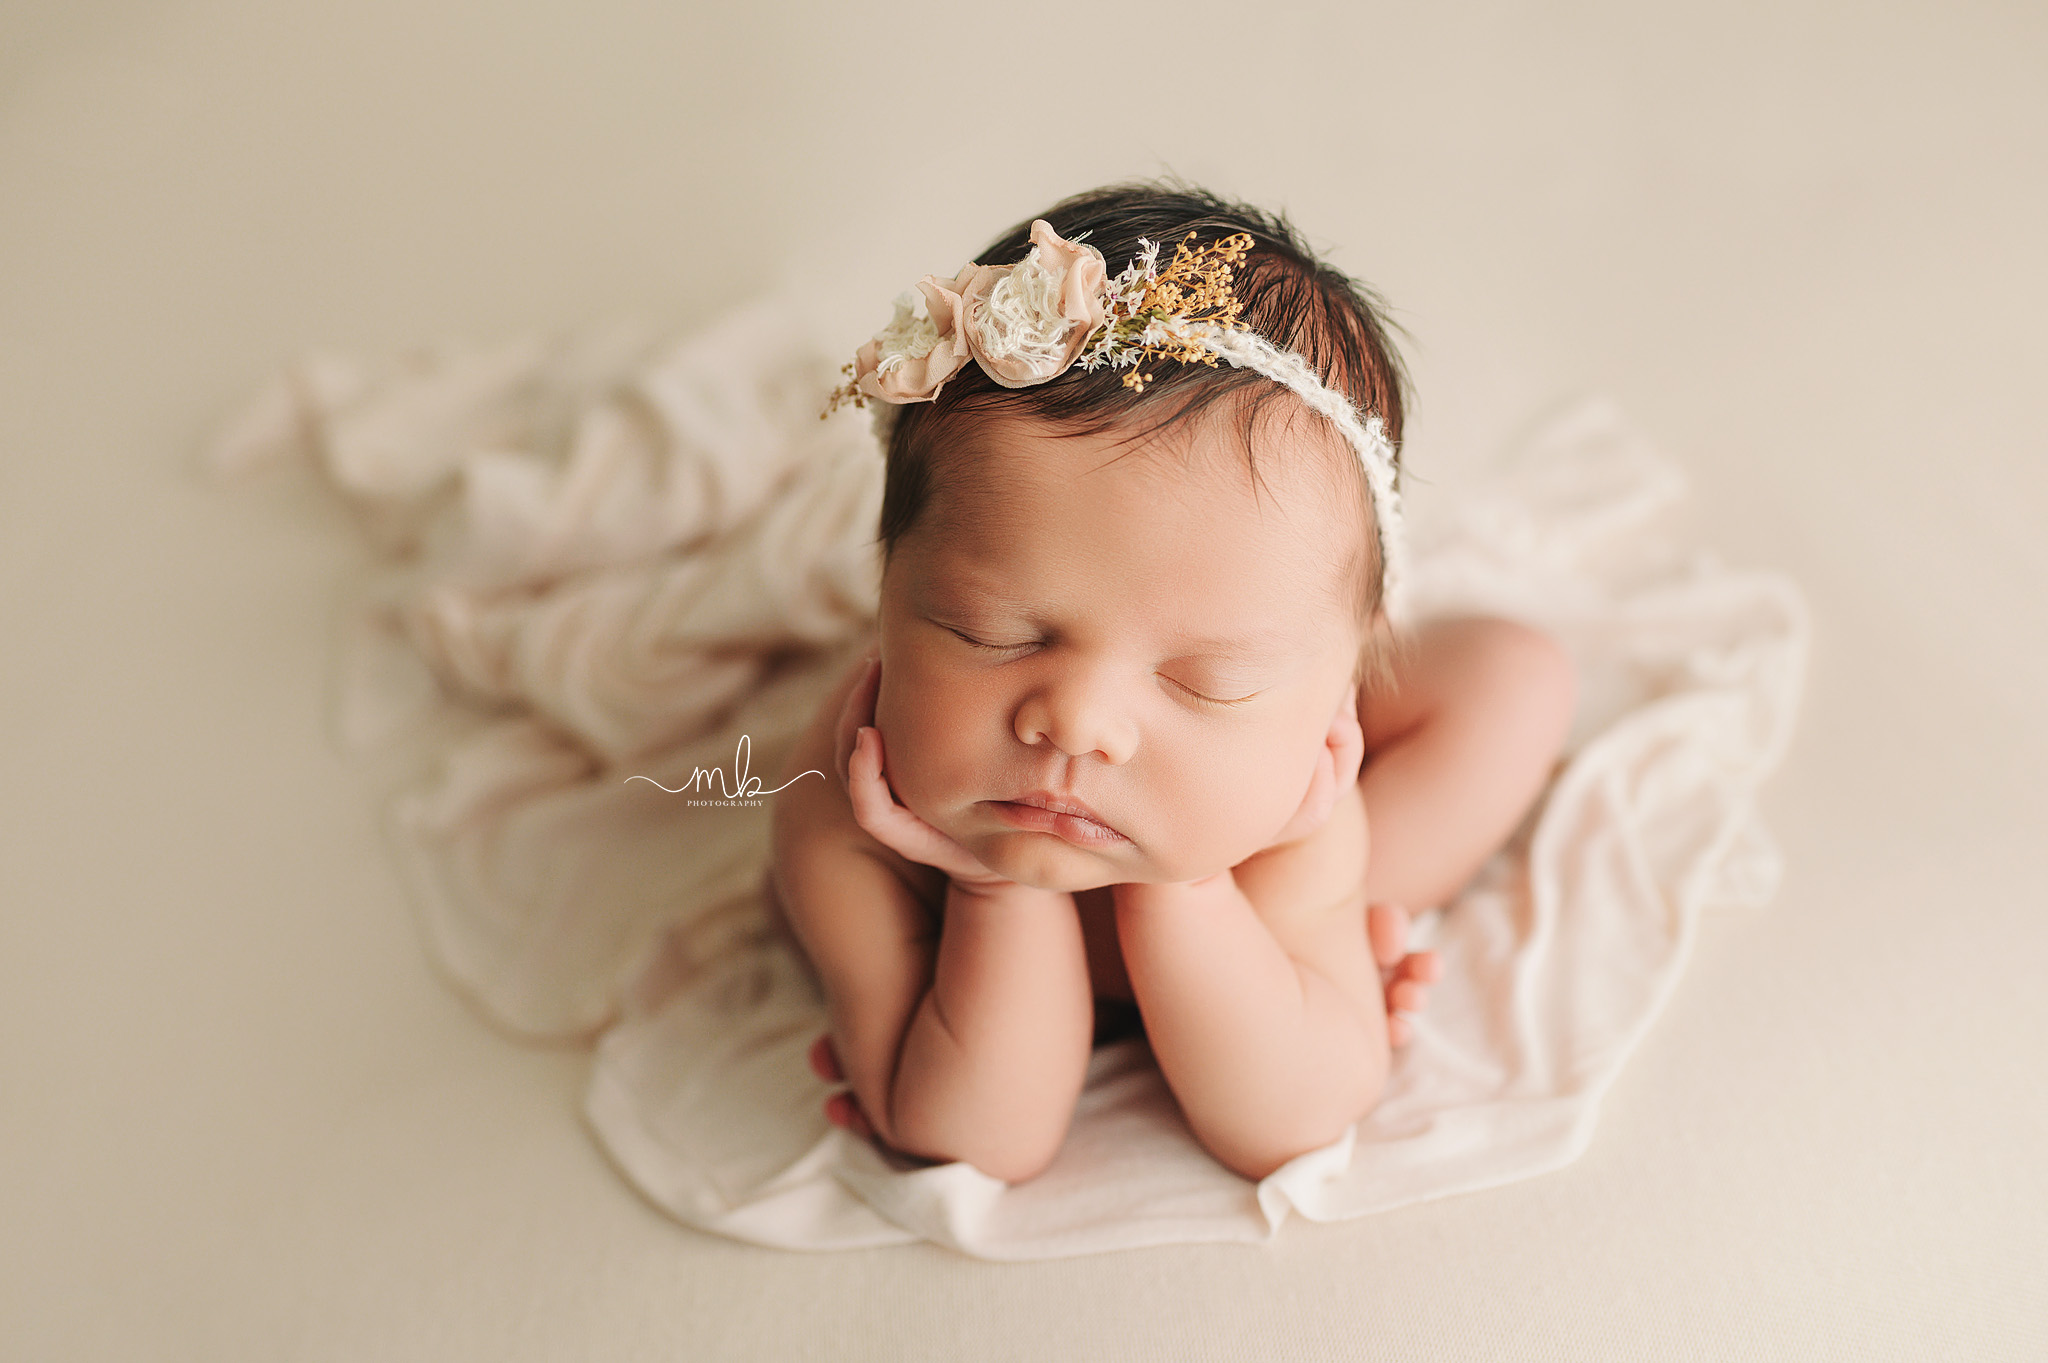 Melissa Berry, Melissa Berry Photography, Newborn, Newborn Photography, Girl Newborn, Flower Crown Newborn